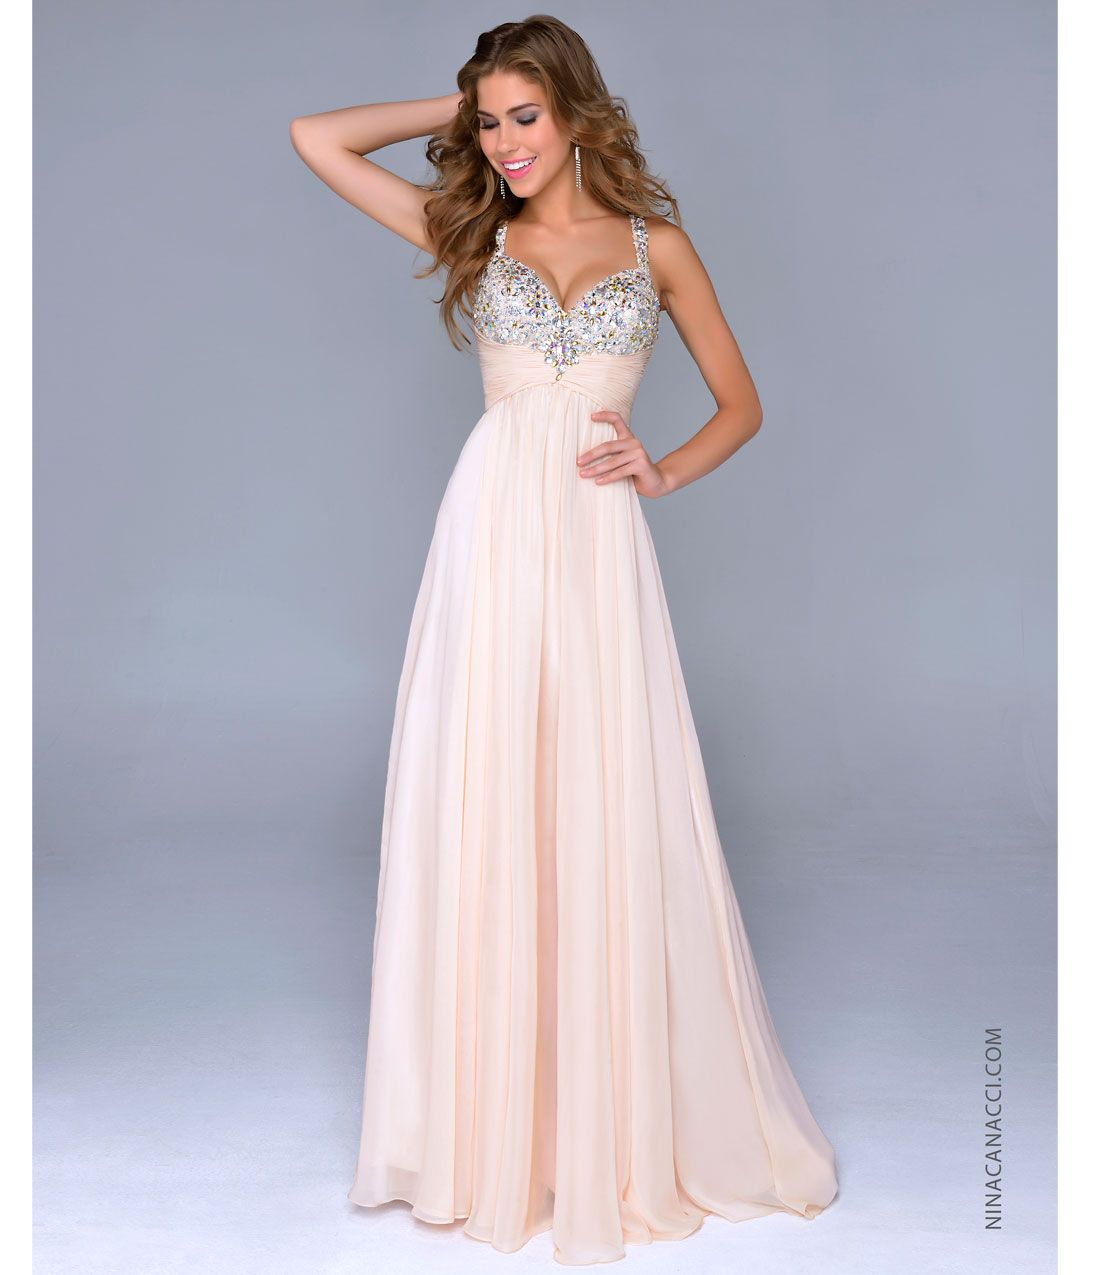 Best 1920s Prom Dresses - Great Gatsby Style Gowns | Dresses ...